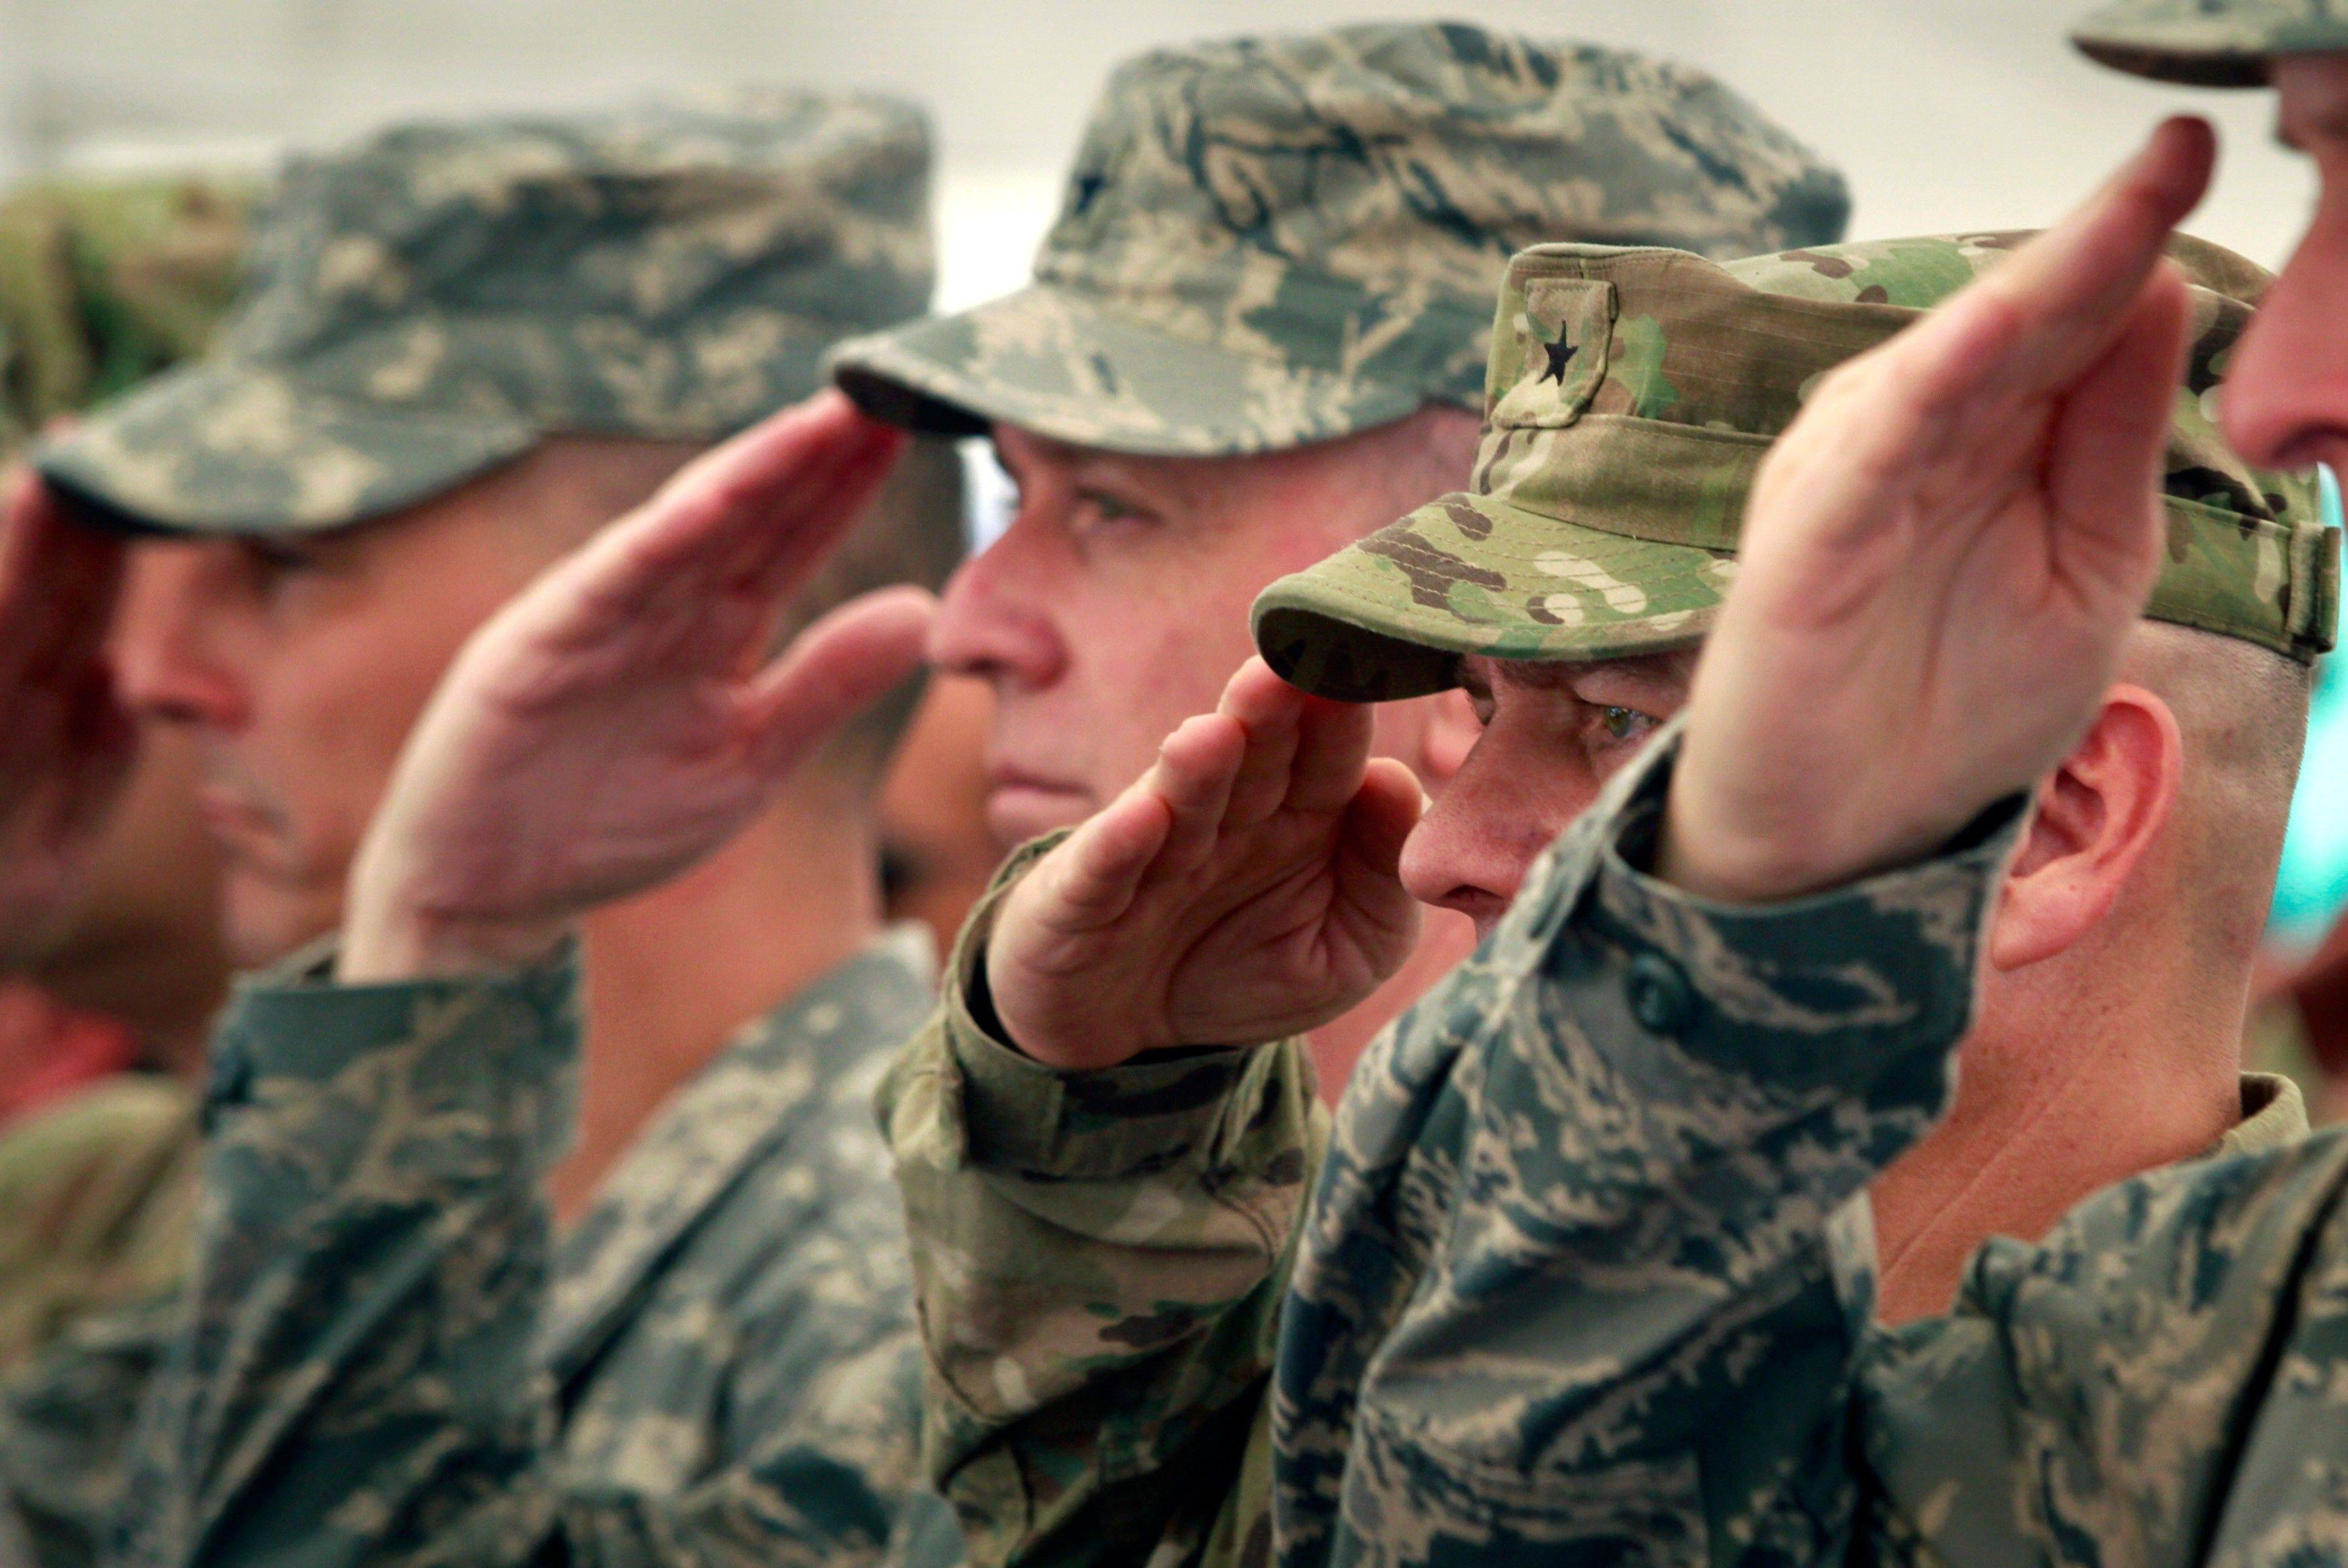 U.S. soldiers with the NATO-led International Security Assistance Force (ISAF) salute during an event to mark the 10th anniversary of the Sept. 11 attacks on the United States, at the U.S. embassy in Kabul, Afghanistan Sunday, Sept. 11, 2011.